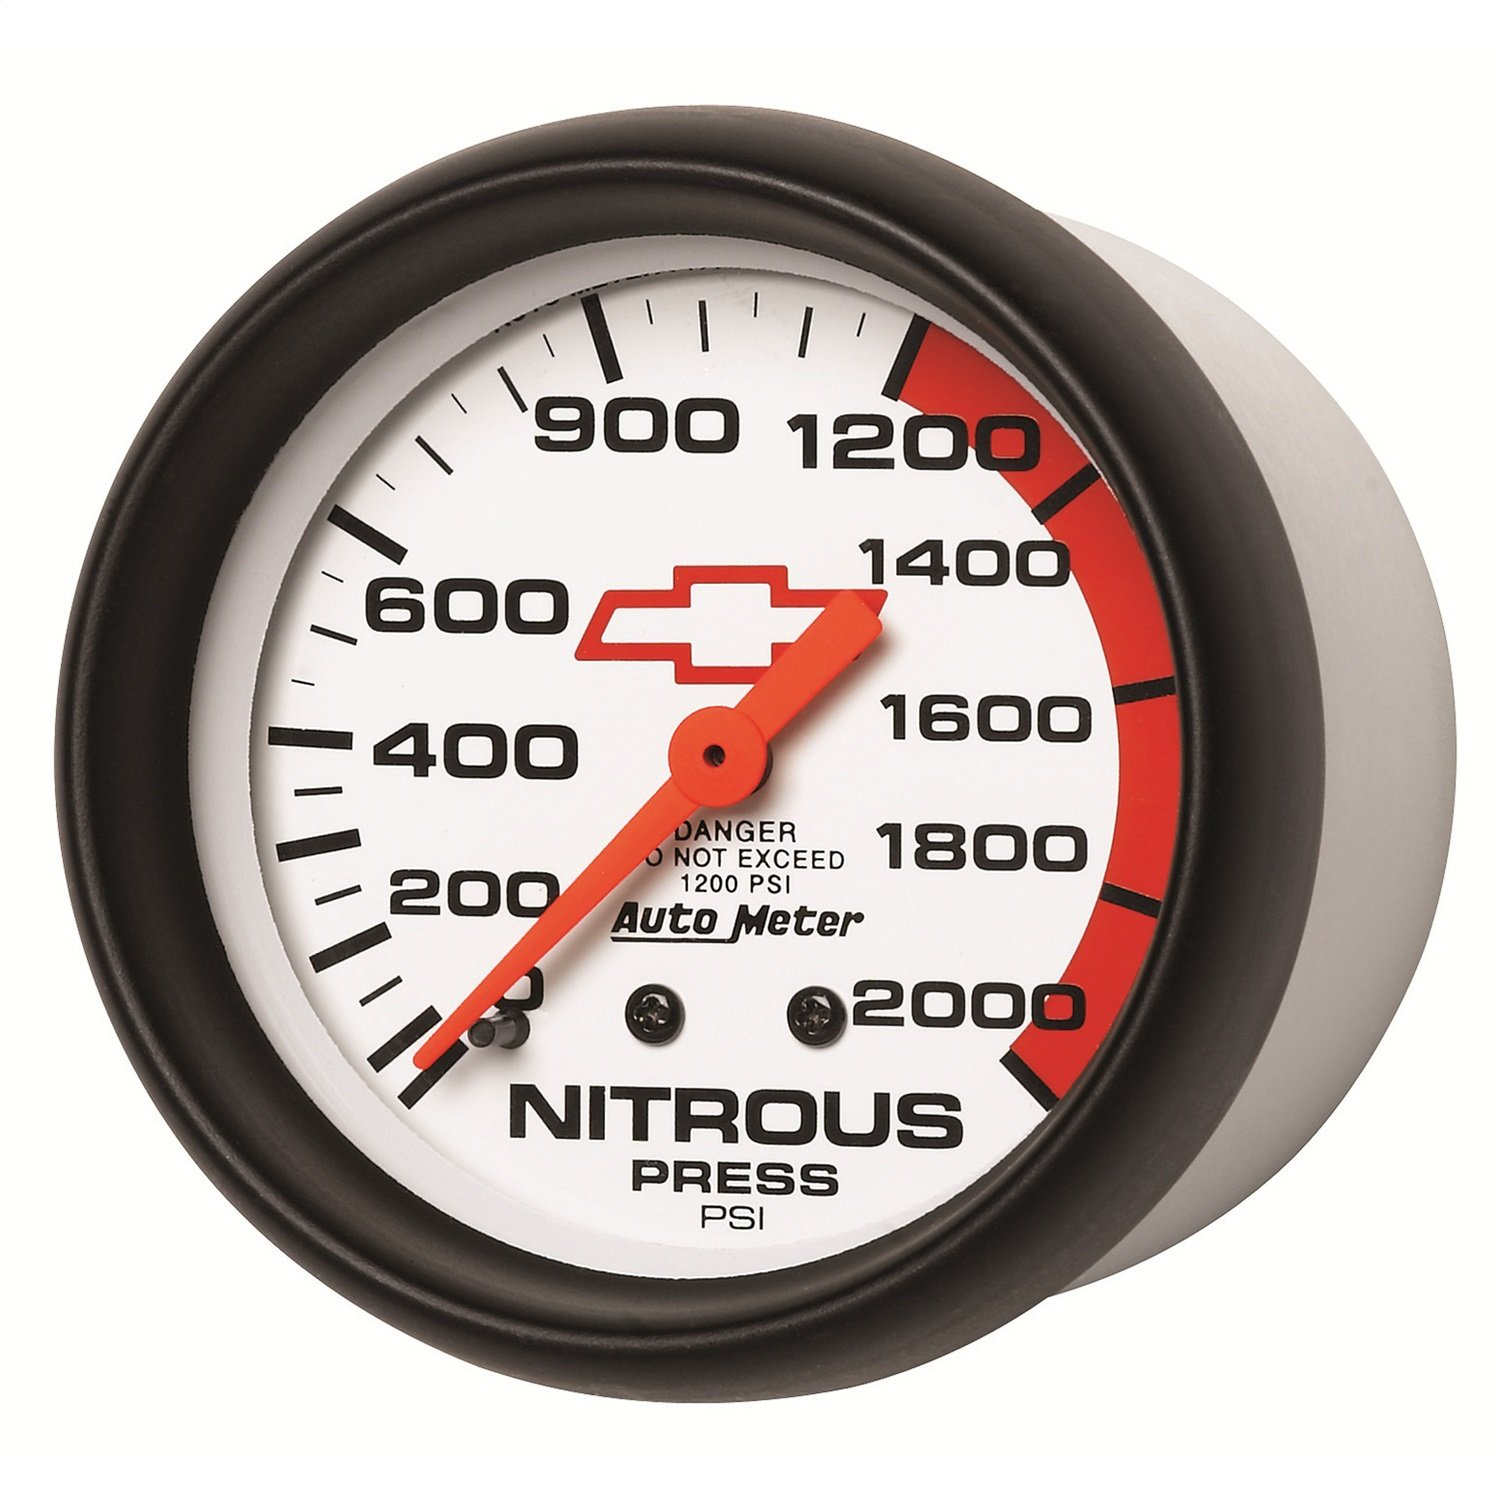 Auto Meter 5828-00406 GM Performance Parts 2-5/8'' 0-2000 PSI Mechanical Nitrous Pressure Gauge by AUTO METER